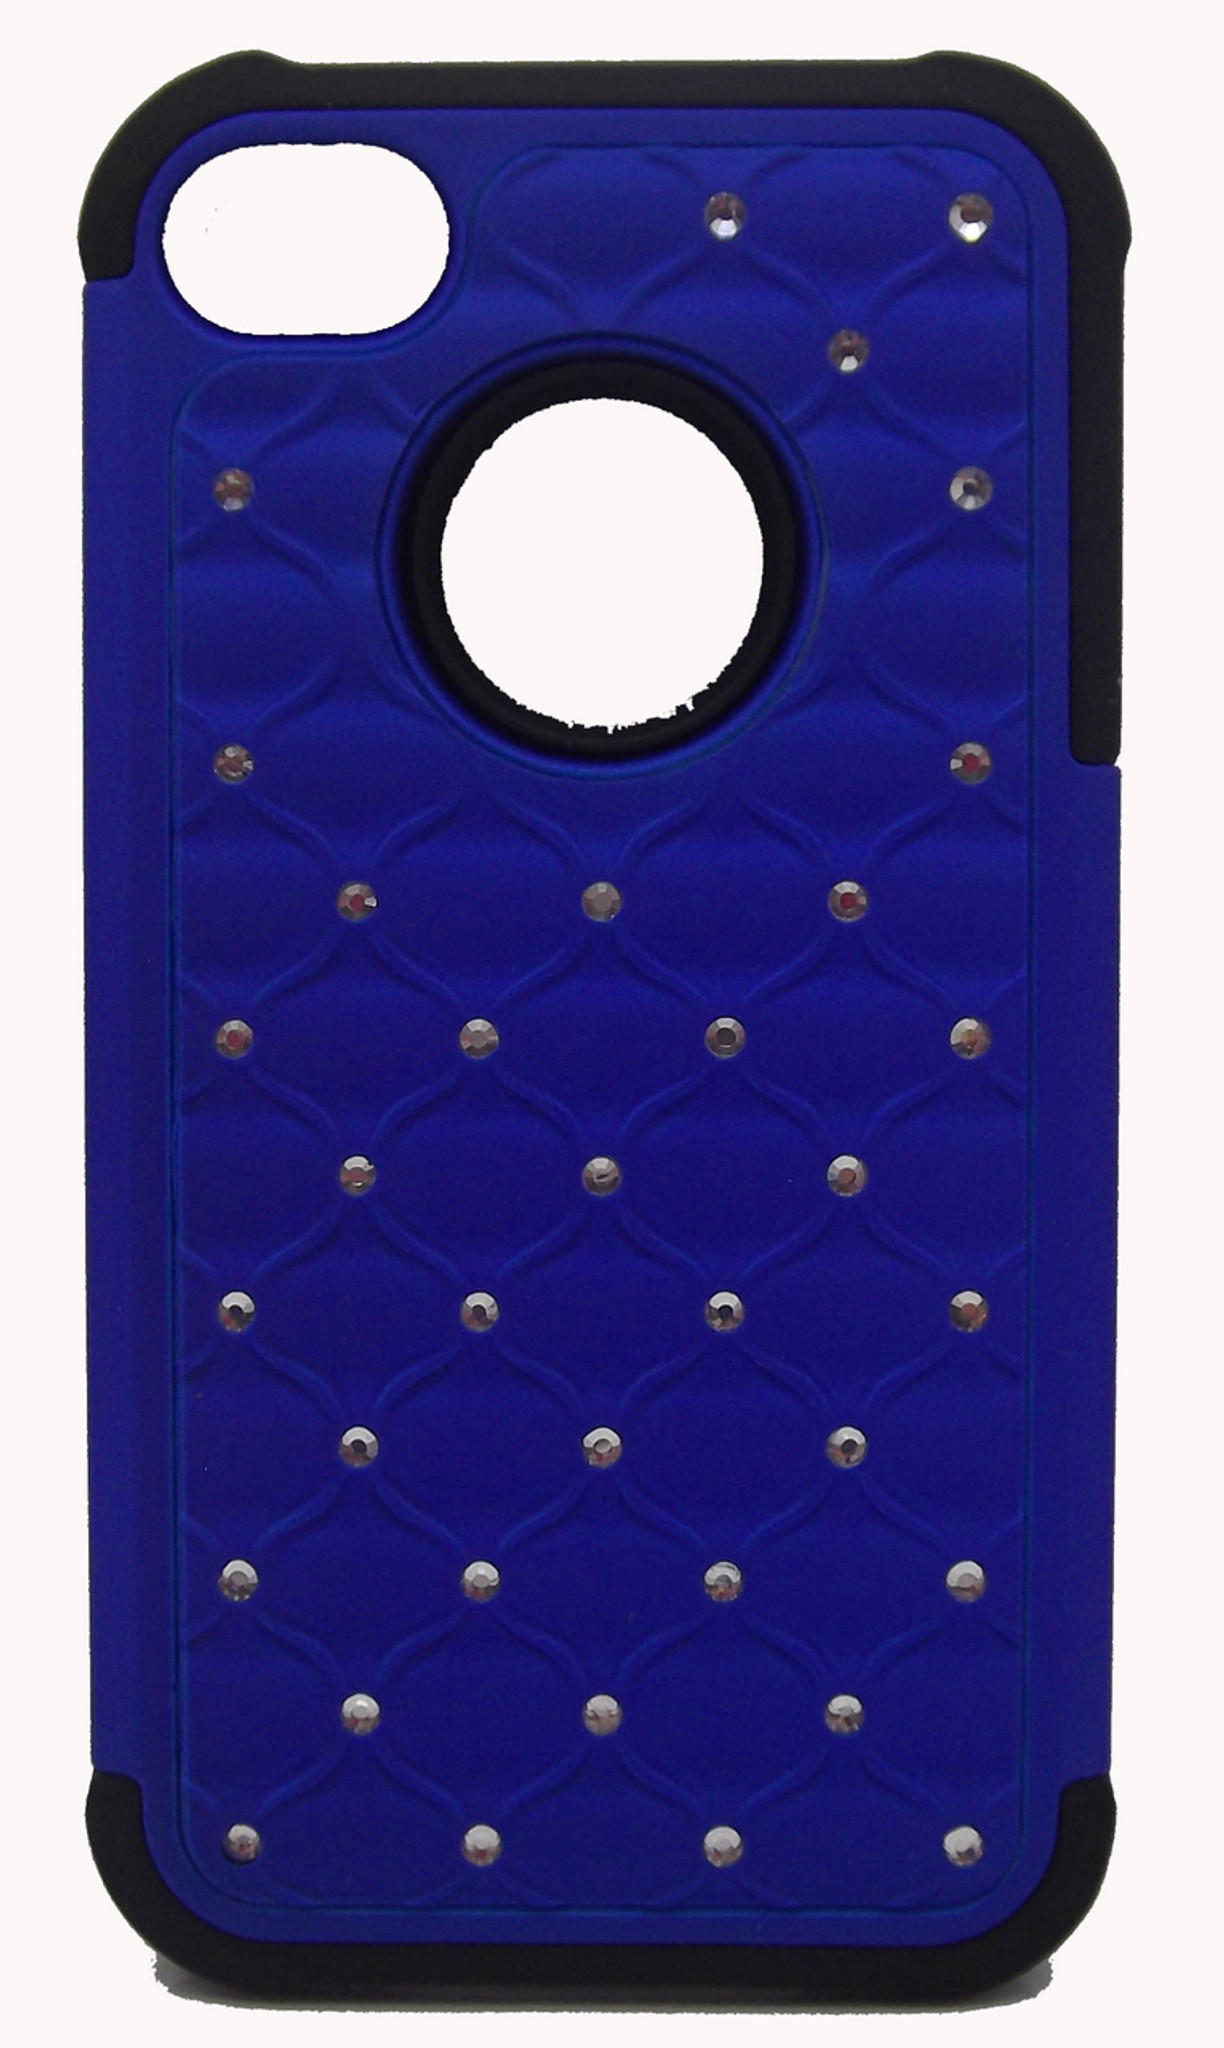 size 40 c2425 046bc Iphone 4/4s Dual Bling Case Blue & Black - WORLD CELLULAR